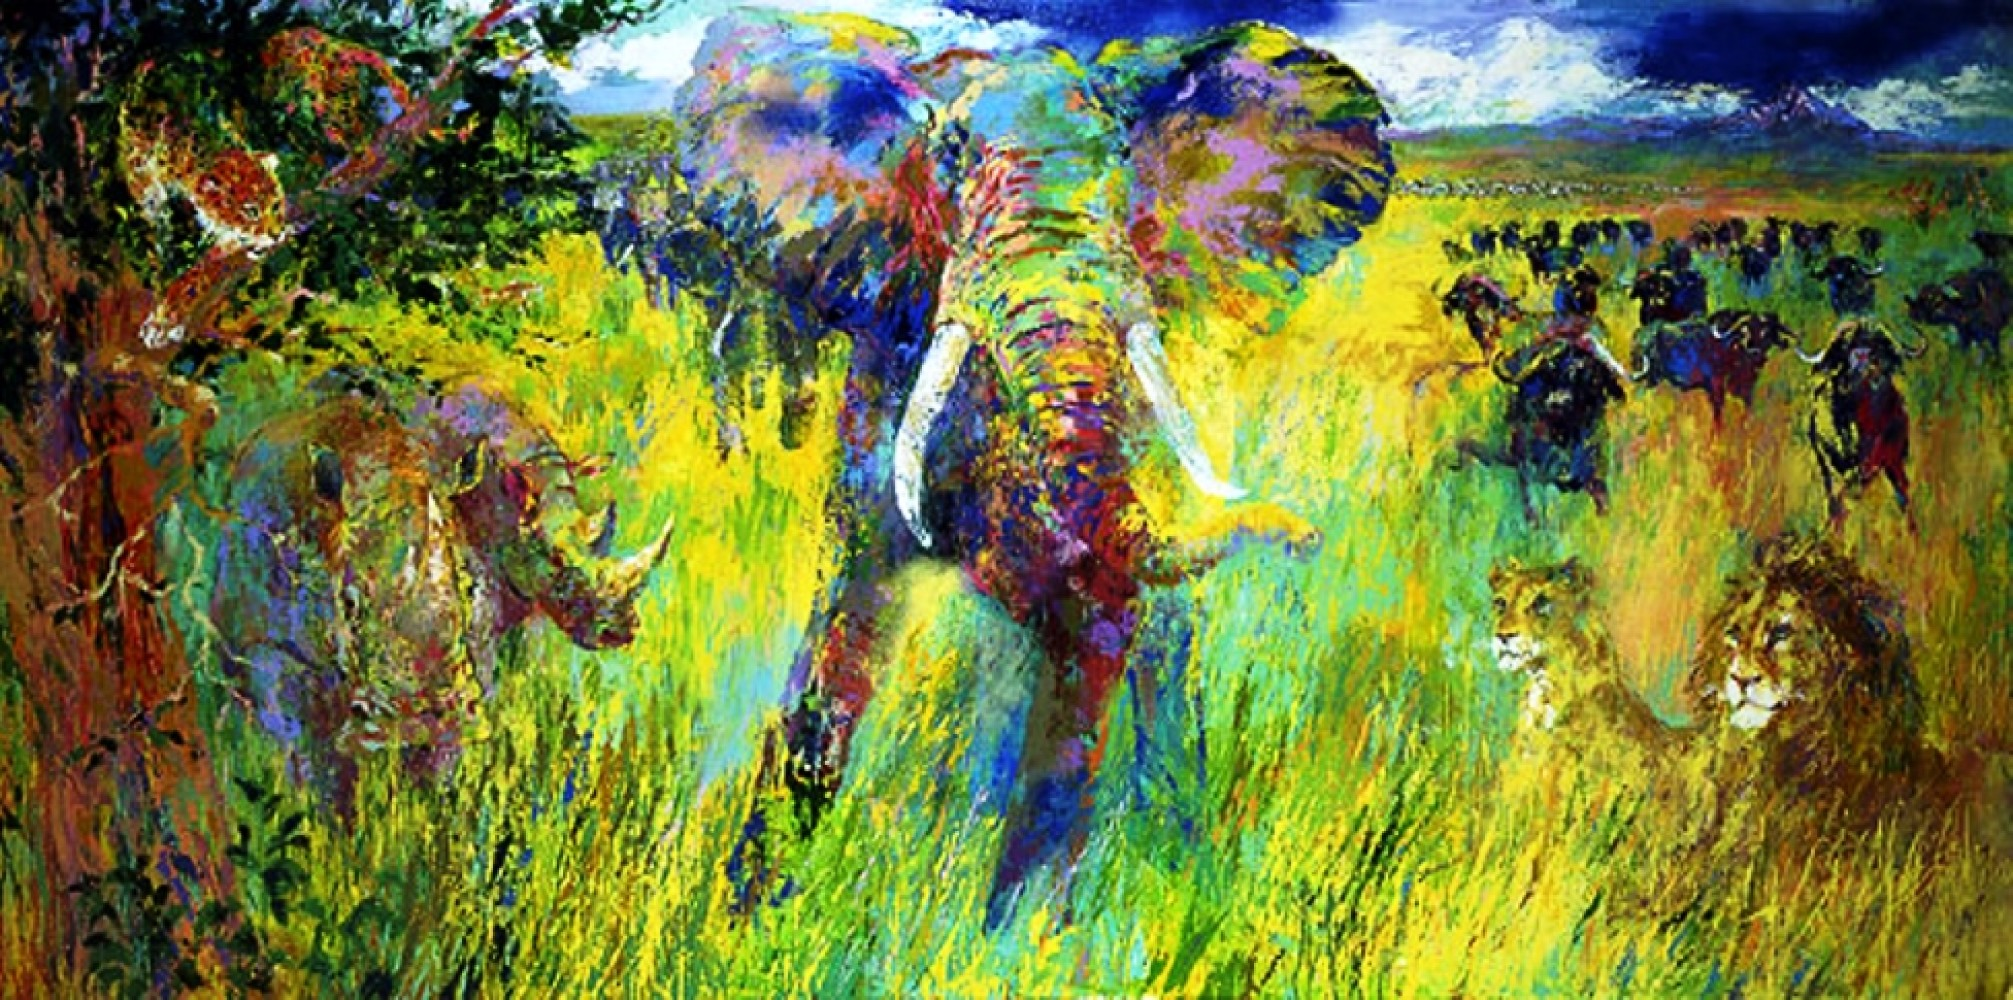 Leroy neiman art for sale for Large artwork for sale